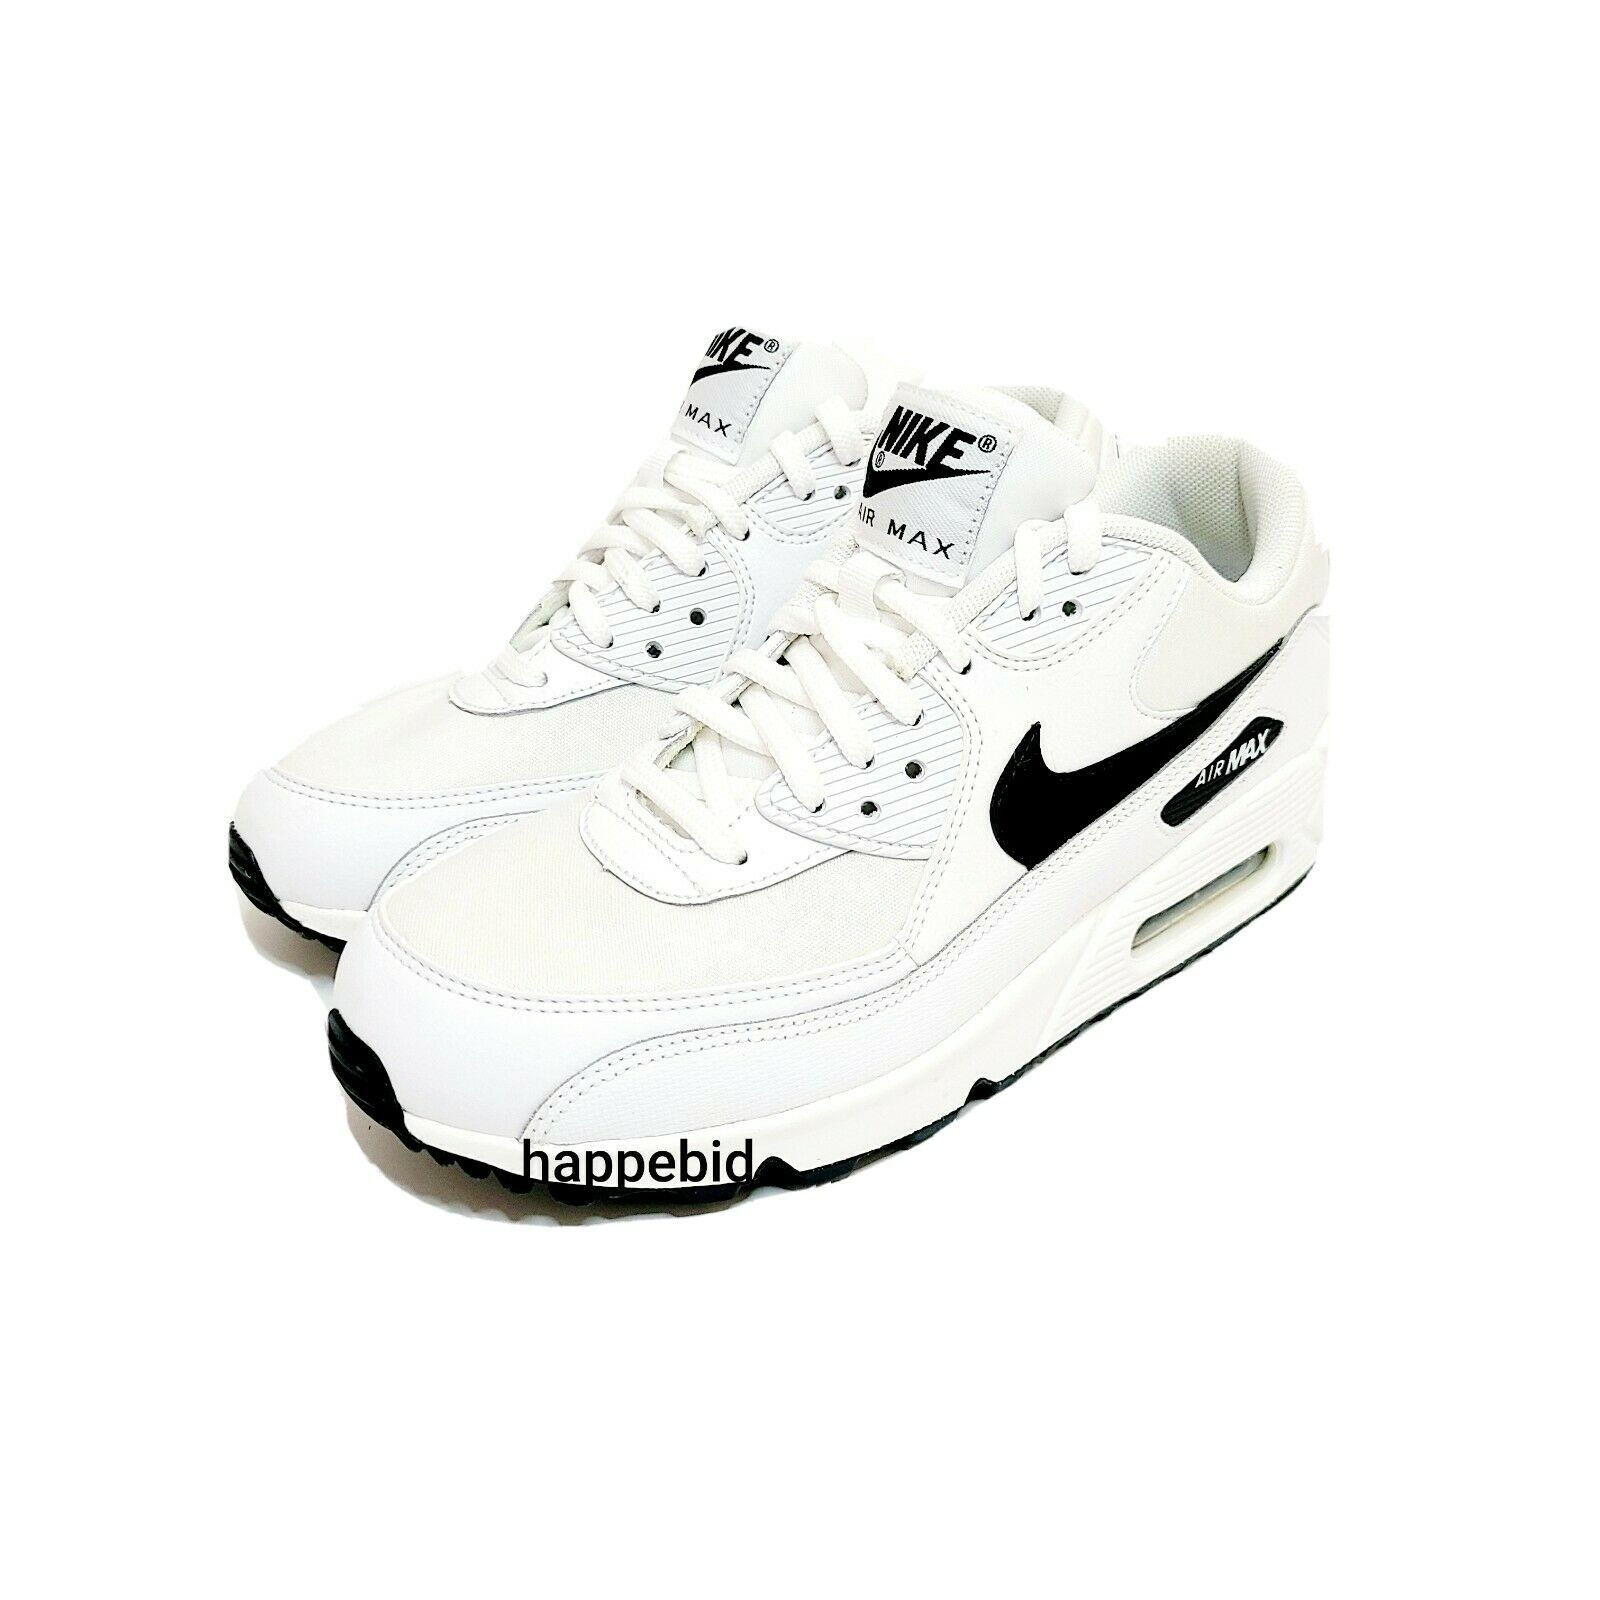 Brand New Nike Air Max 90 White Black 325213 131 Women 7 No Box Fast Shipping For Sale Online